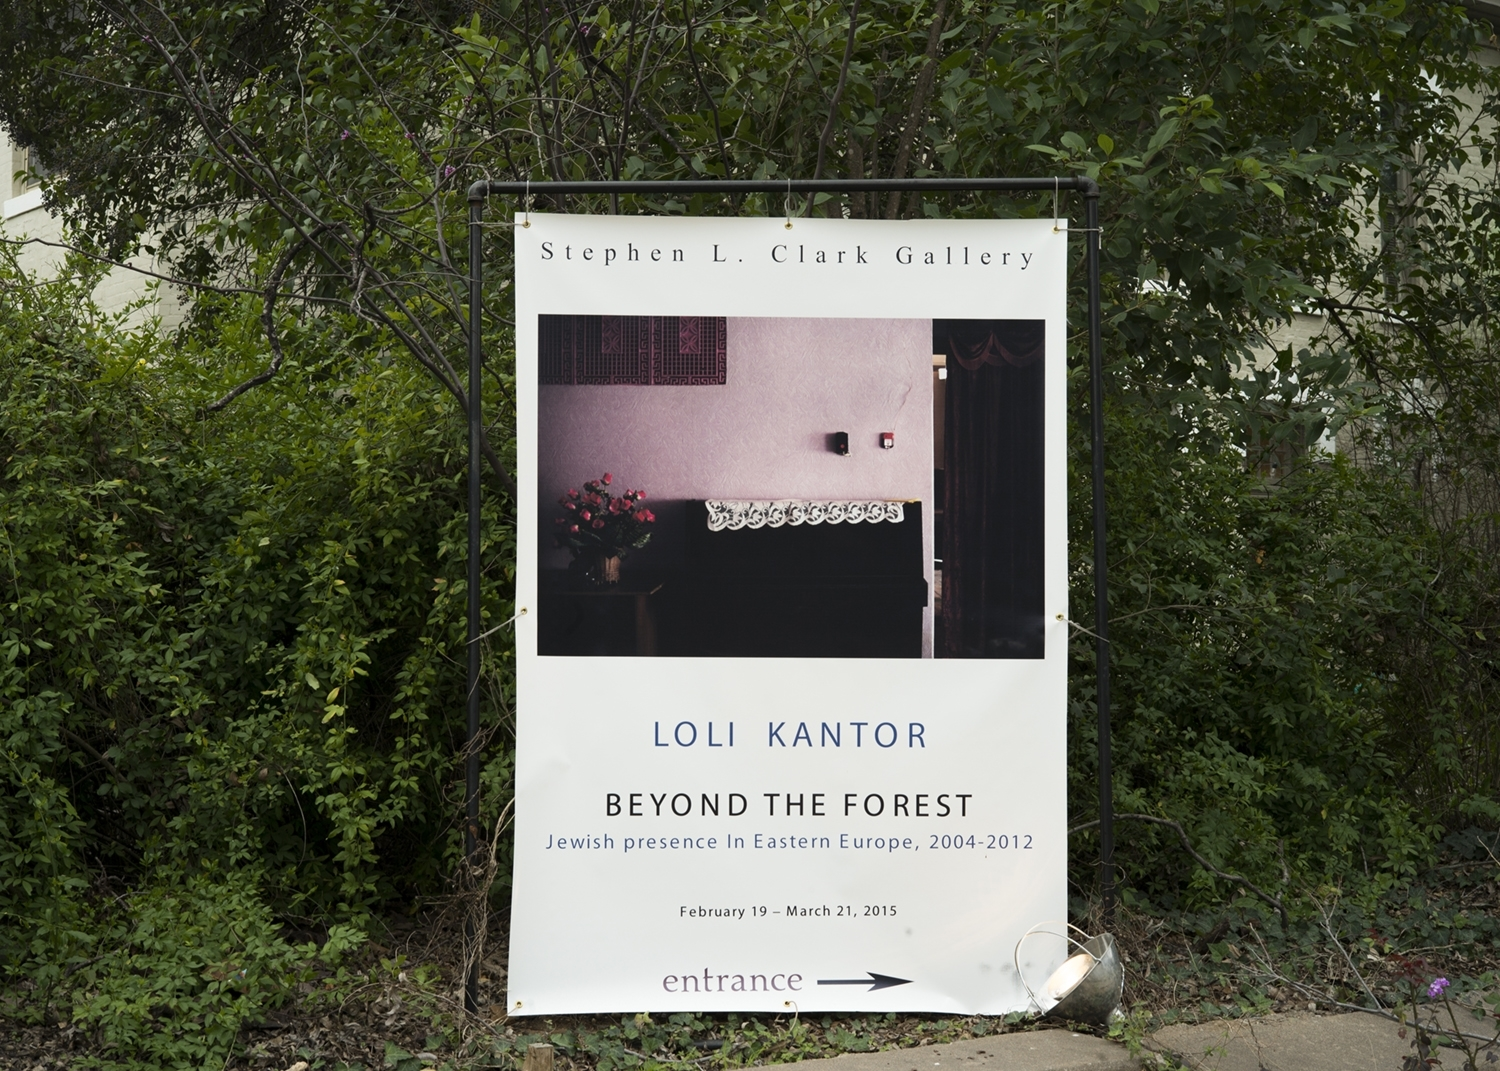 STEPHEN CLARK GALLERY:     BEYOND THE FOREST     JEWISH PRESENCE IN EASTERN EUROPE,      2004-2012     ON VIEW UNTIL MARCH 21. 2015 1101 W. SIXTH STREET, AUSTIN, TX 78703      T: +1-512-477-0828 Gallery hours Tue–Sat: 10 a.m.–4 p.m.  Or By Appointment    SIGNED BOOKS ARE AVAILABLE AT THE GALLERY!